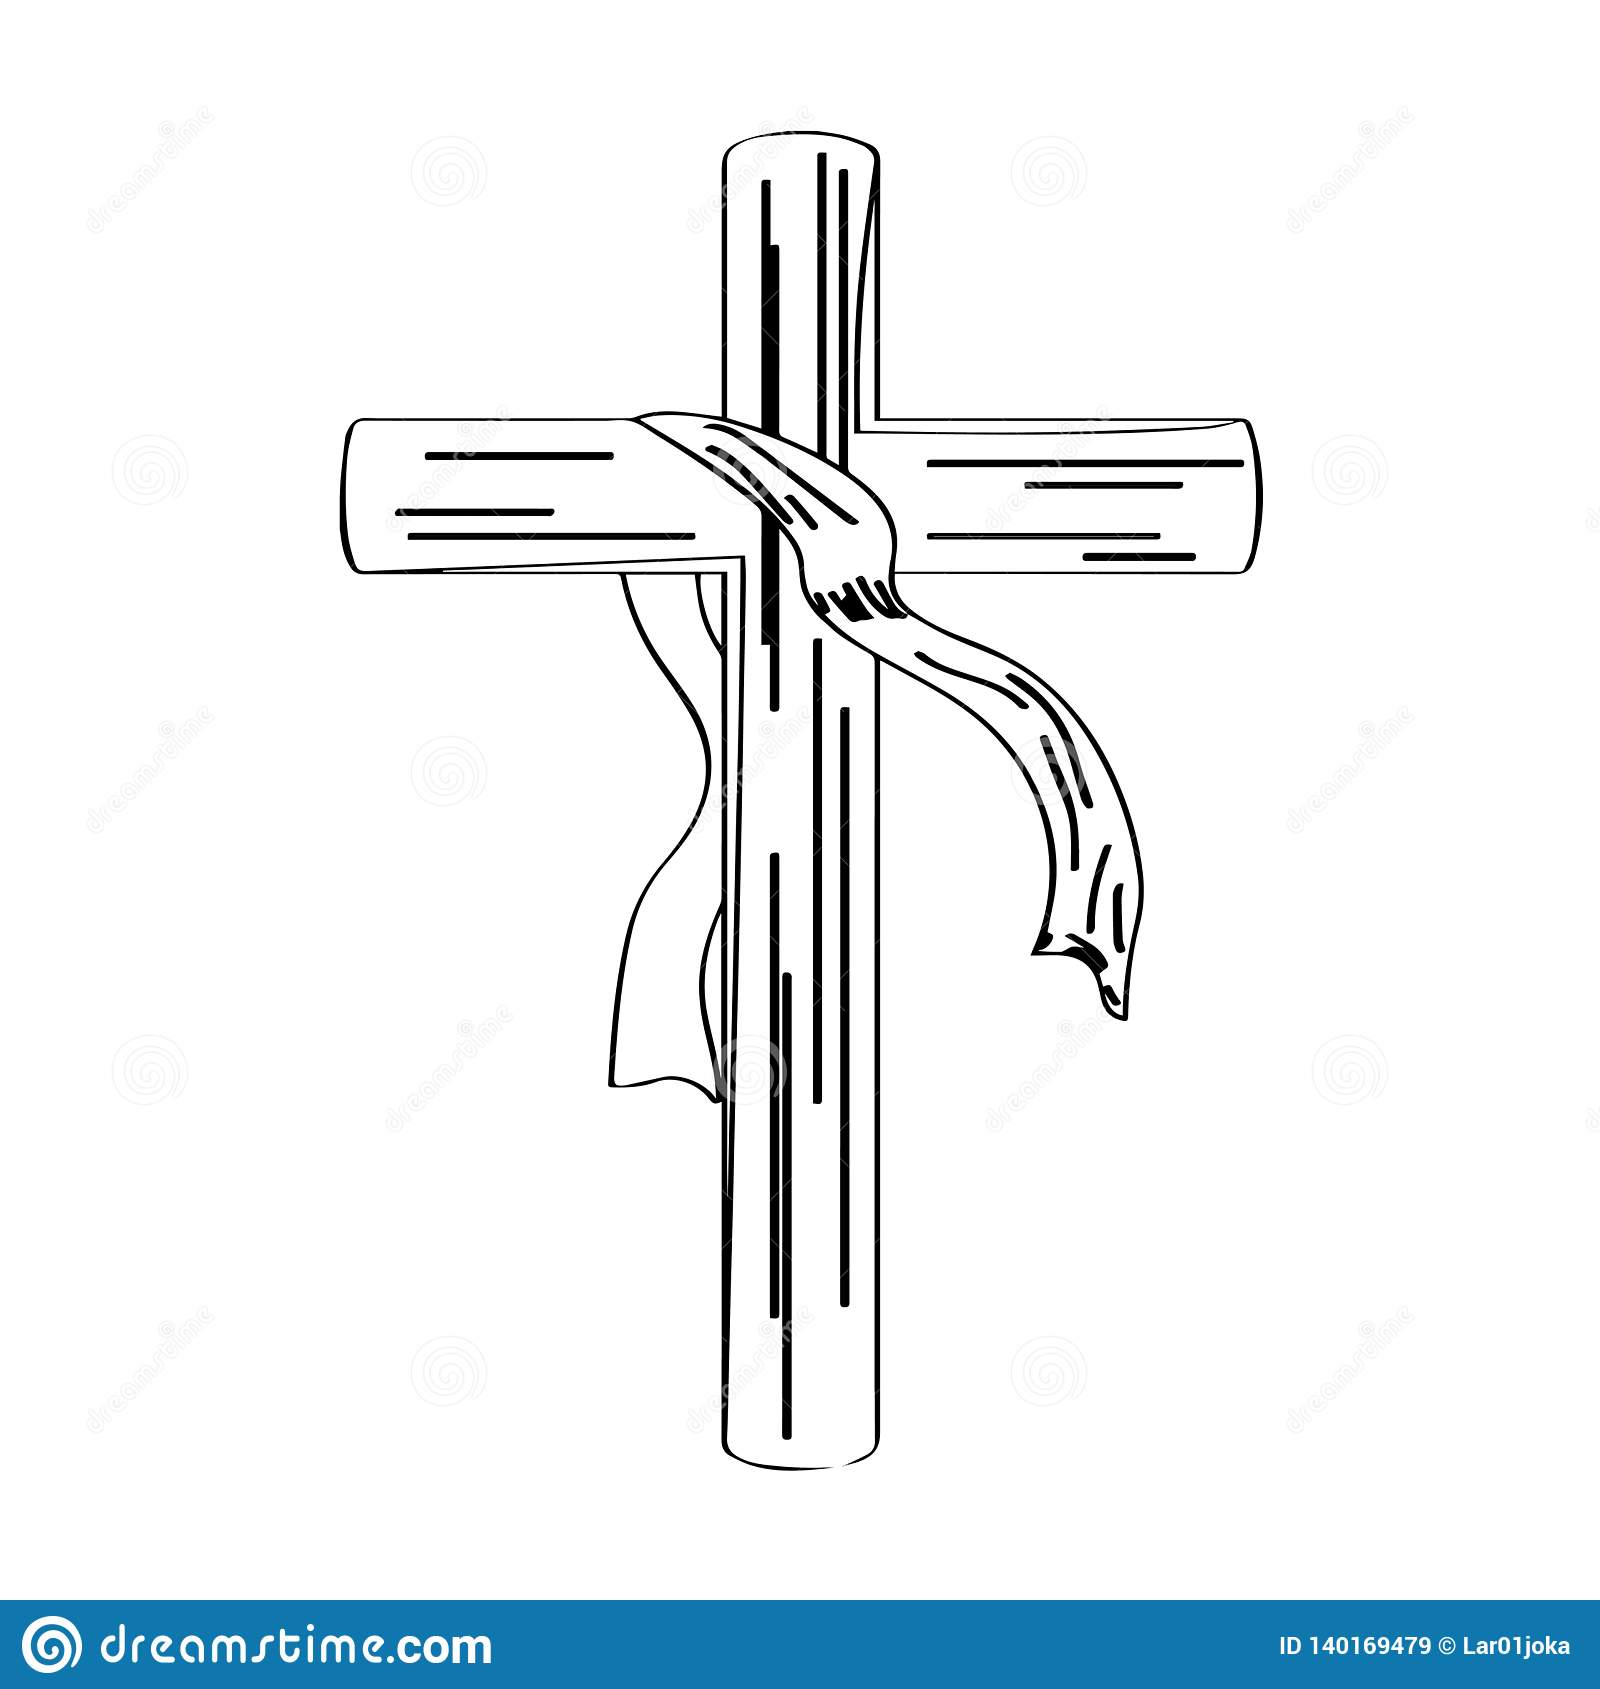 Outline Of A Cross With A Cloth Stock Vector Illustration Of Religion Church 140169479 Discover 63 free cross outline png images with transparent backgrounds. https www dreamstime com outline cross cloth outline cross cloth holy week vector illustration design image140169479